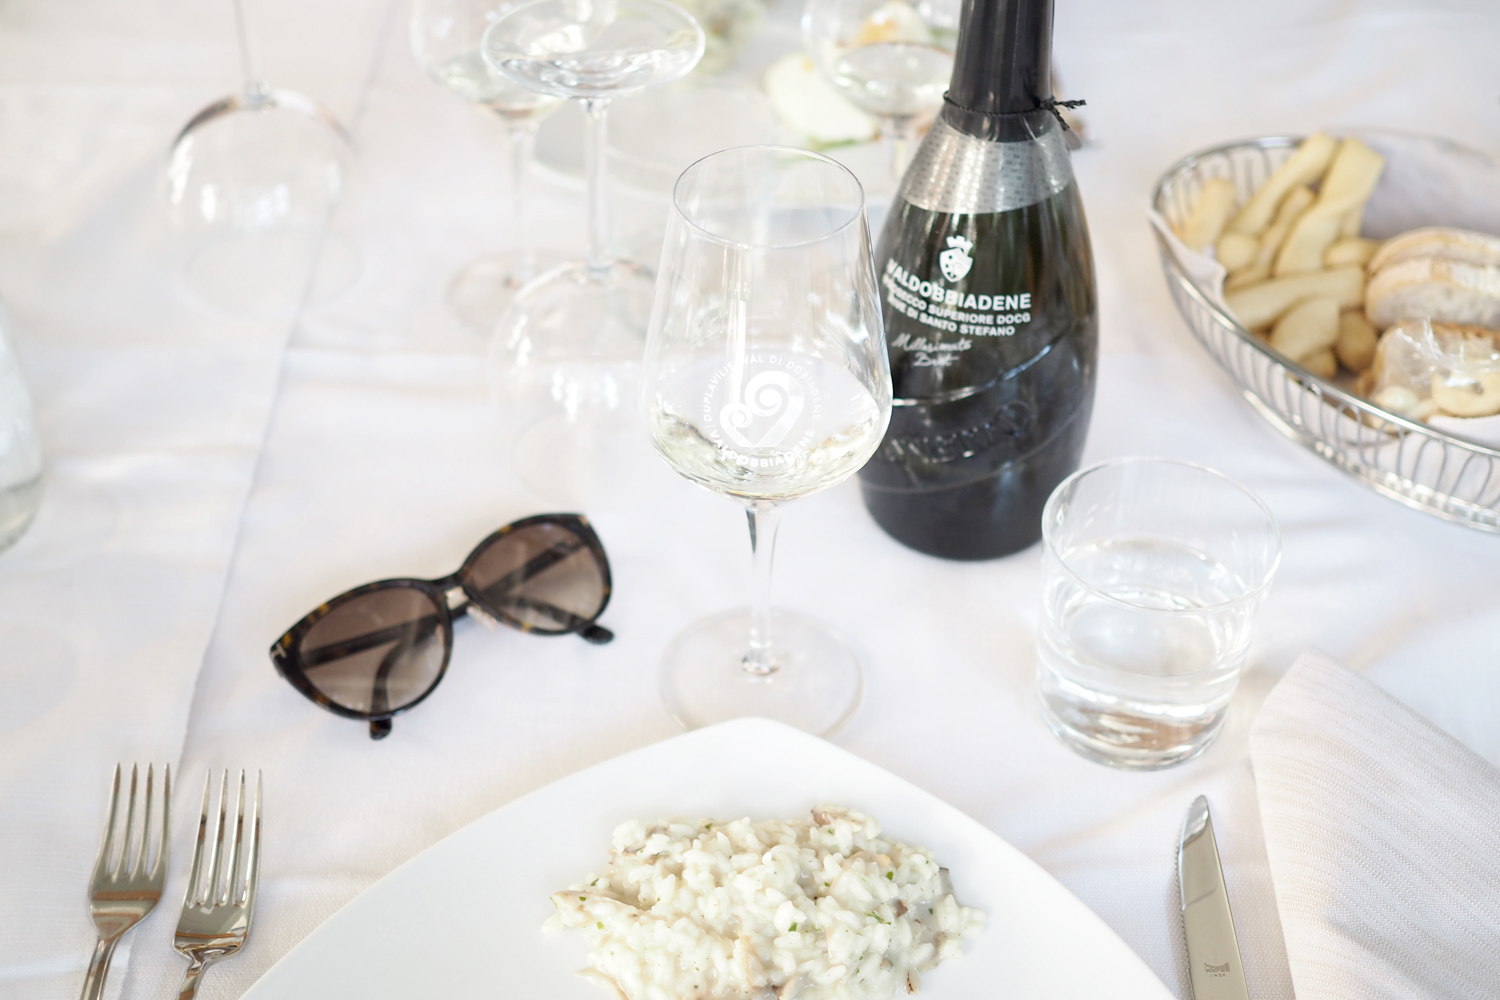 Char and the city - Wine trip to Valdobbiadene in Italy - Mionetto prosecco wineyeards - read more on the blog: //www.idealista.fi/charandthecity/2016/09/14/mionetto-prosecco-valdobbiadene #mionetto #mionettoprosecco #prosecco #wineyeard #winetasting #valdobbiadene #italy